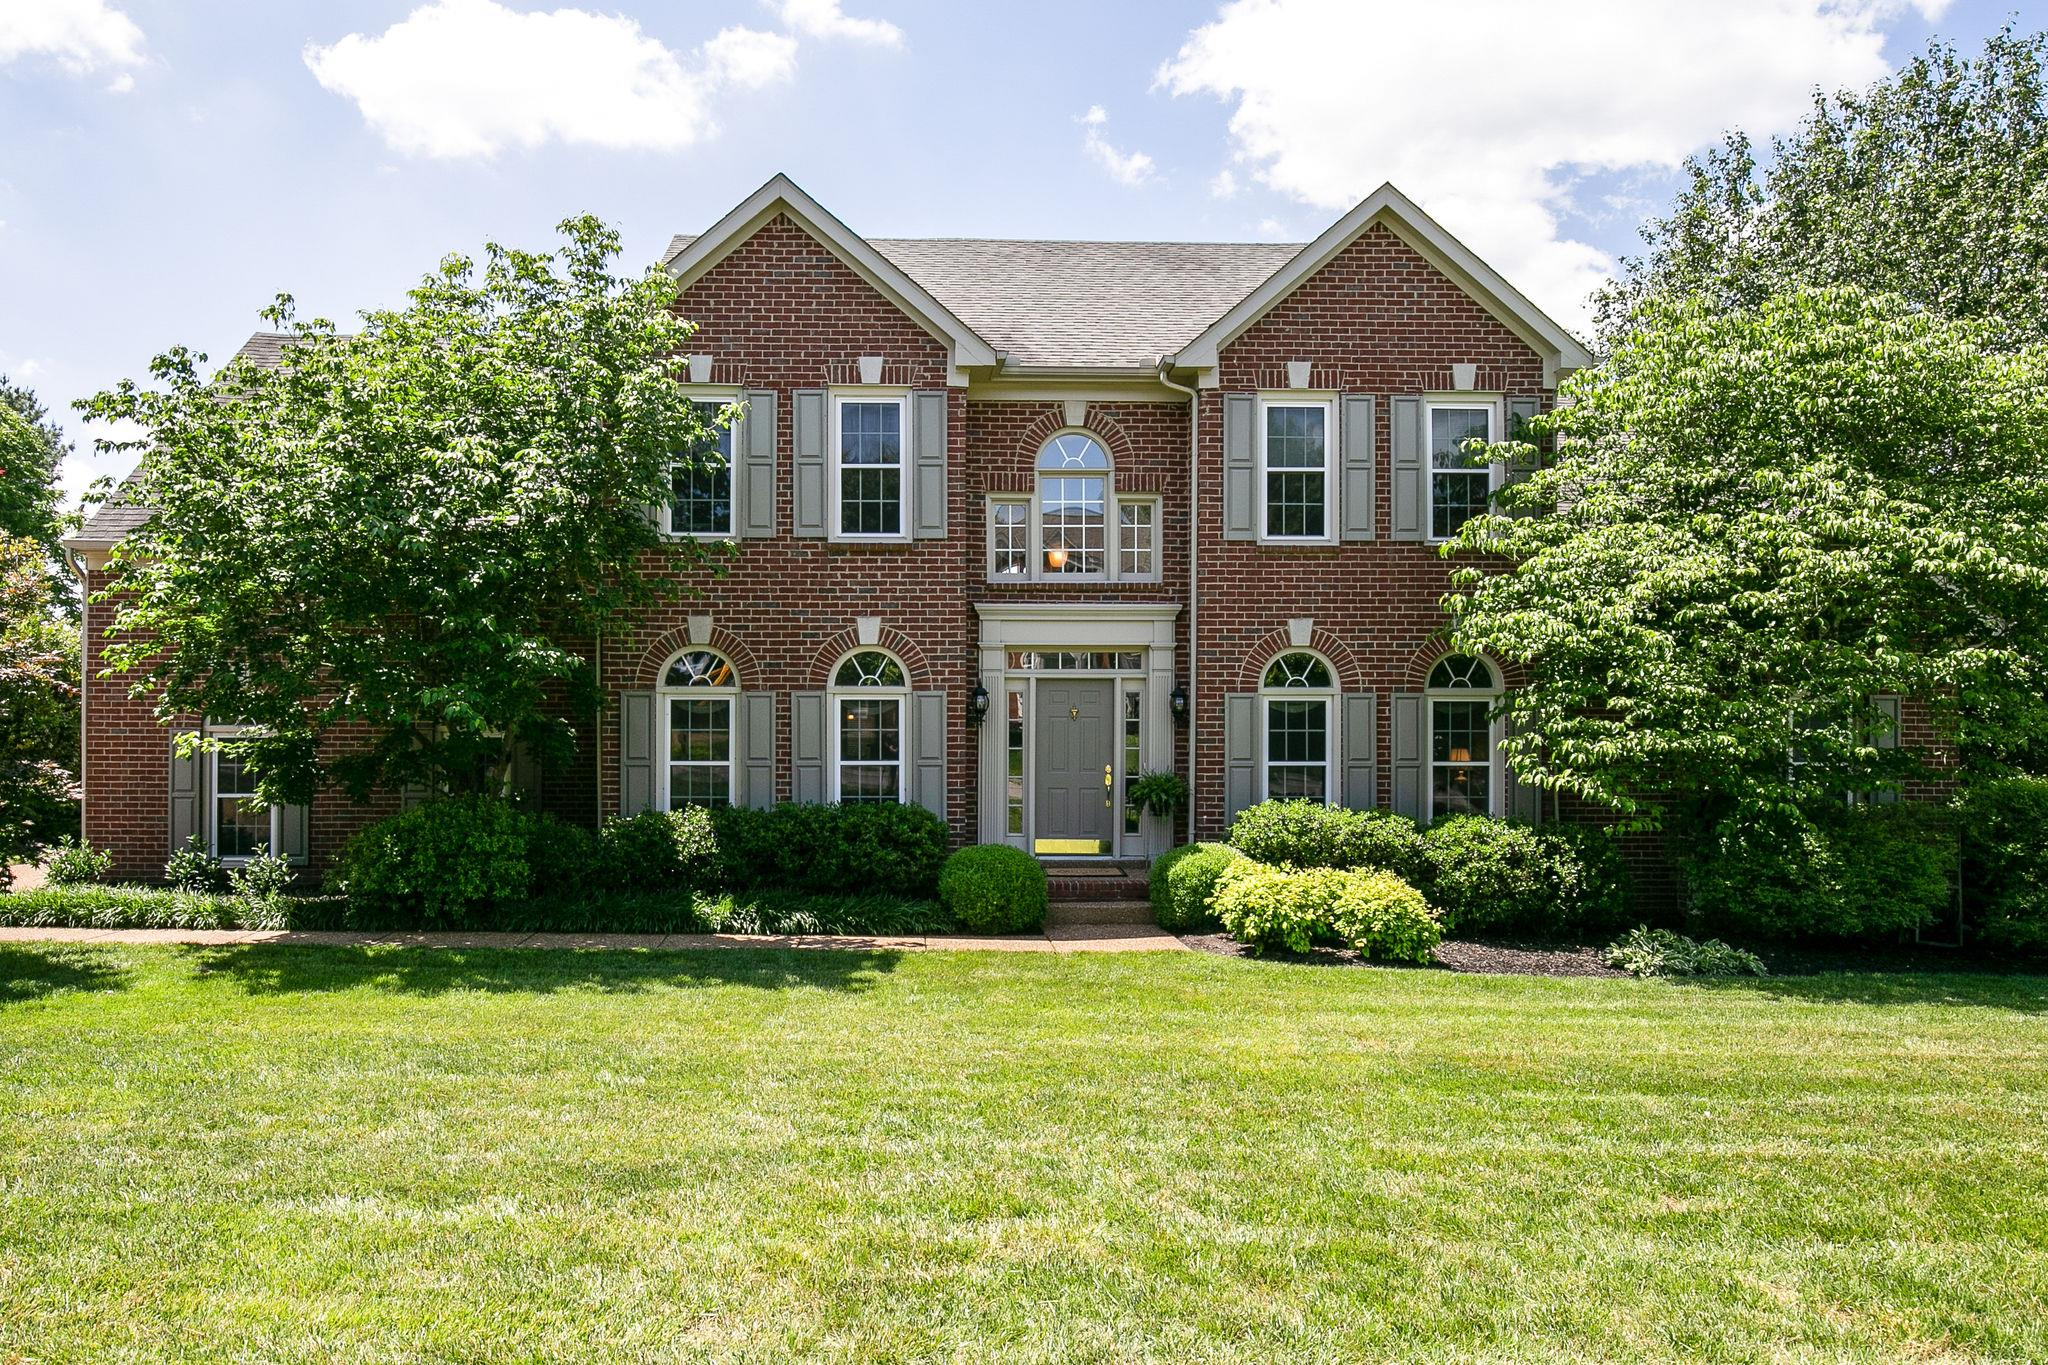 114 Chester Stevens Rd, Franklin, TN 37067 - Franklin, TN real estate listing